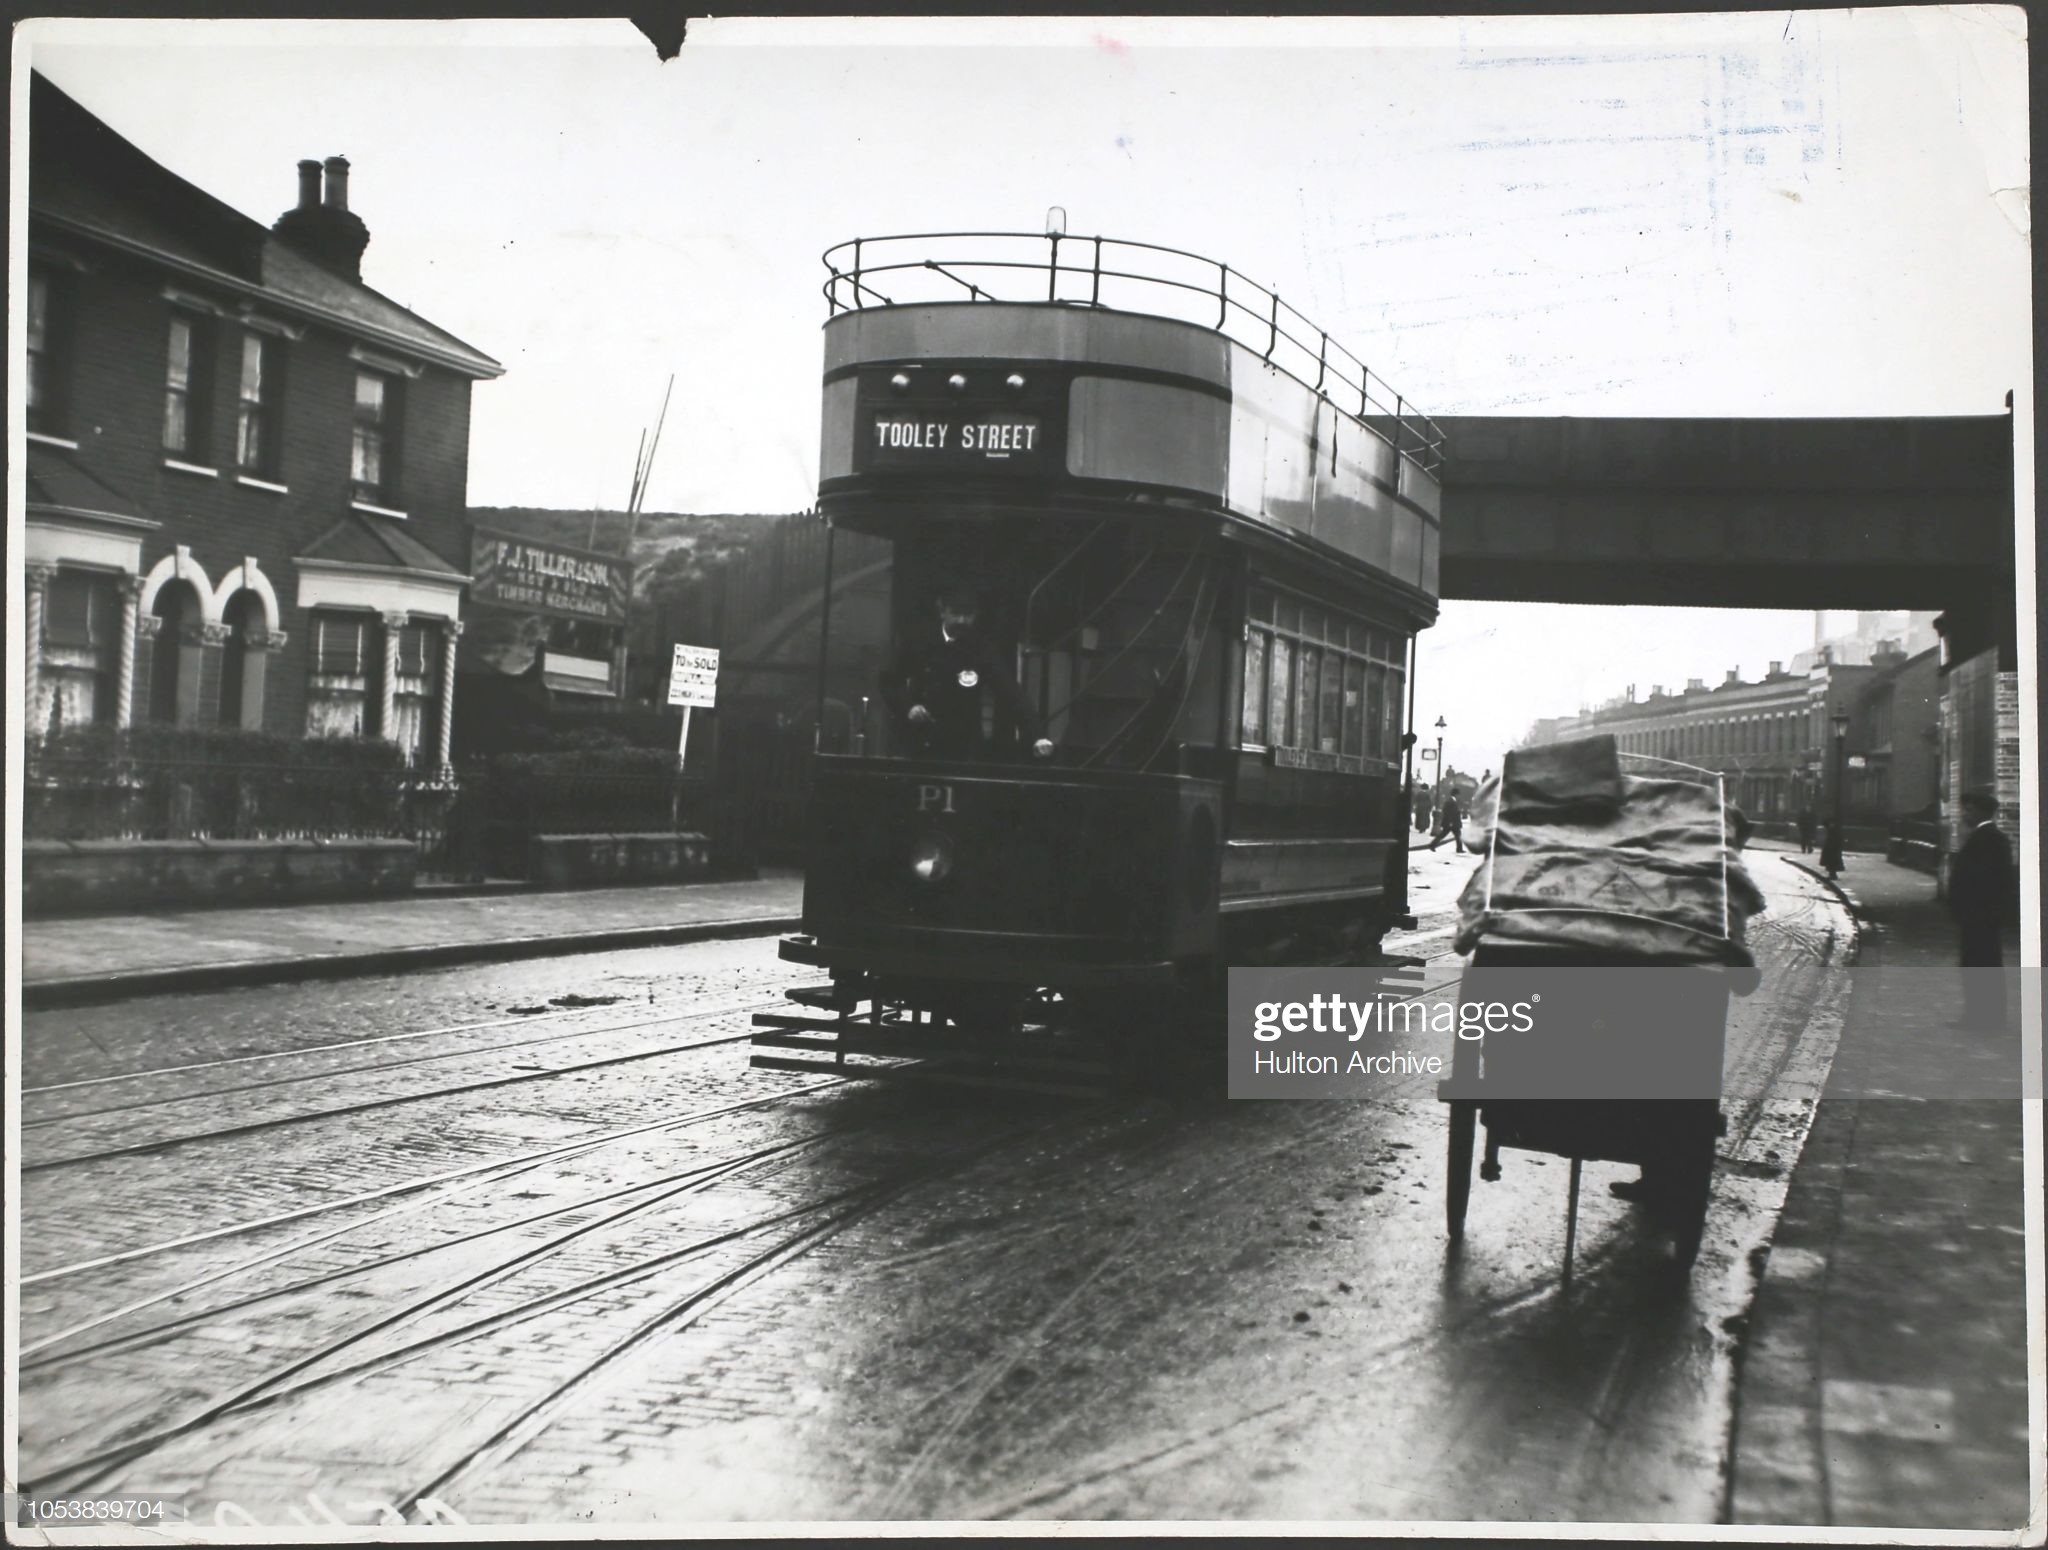 An LCC petrol-electric tram bound for Tooley Street in 1913. X.jpg